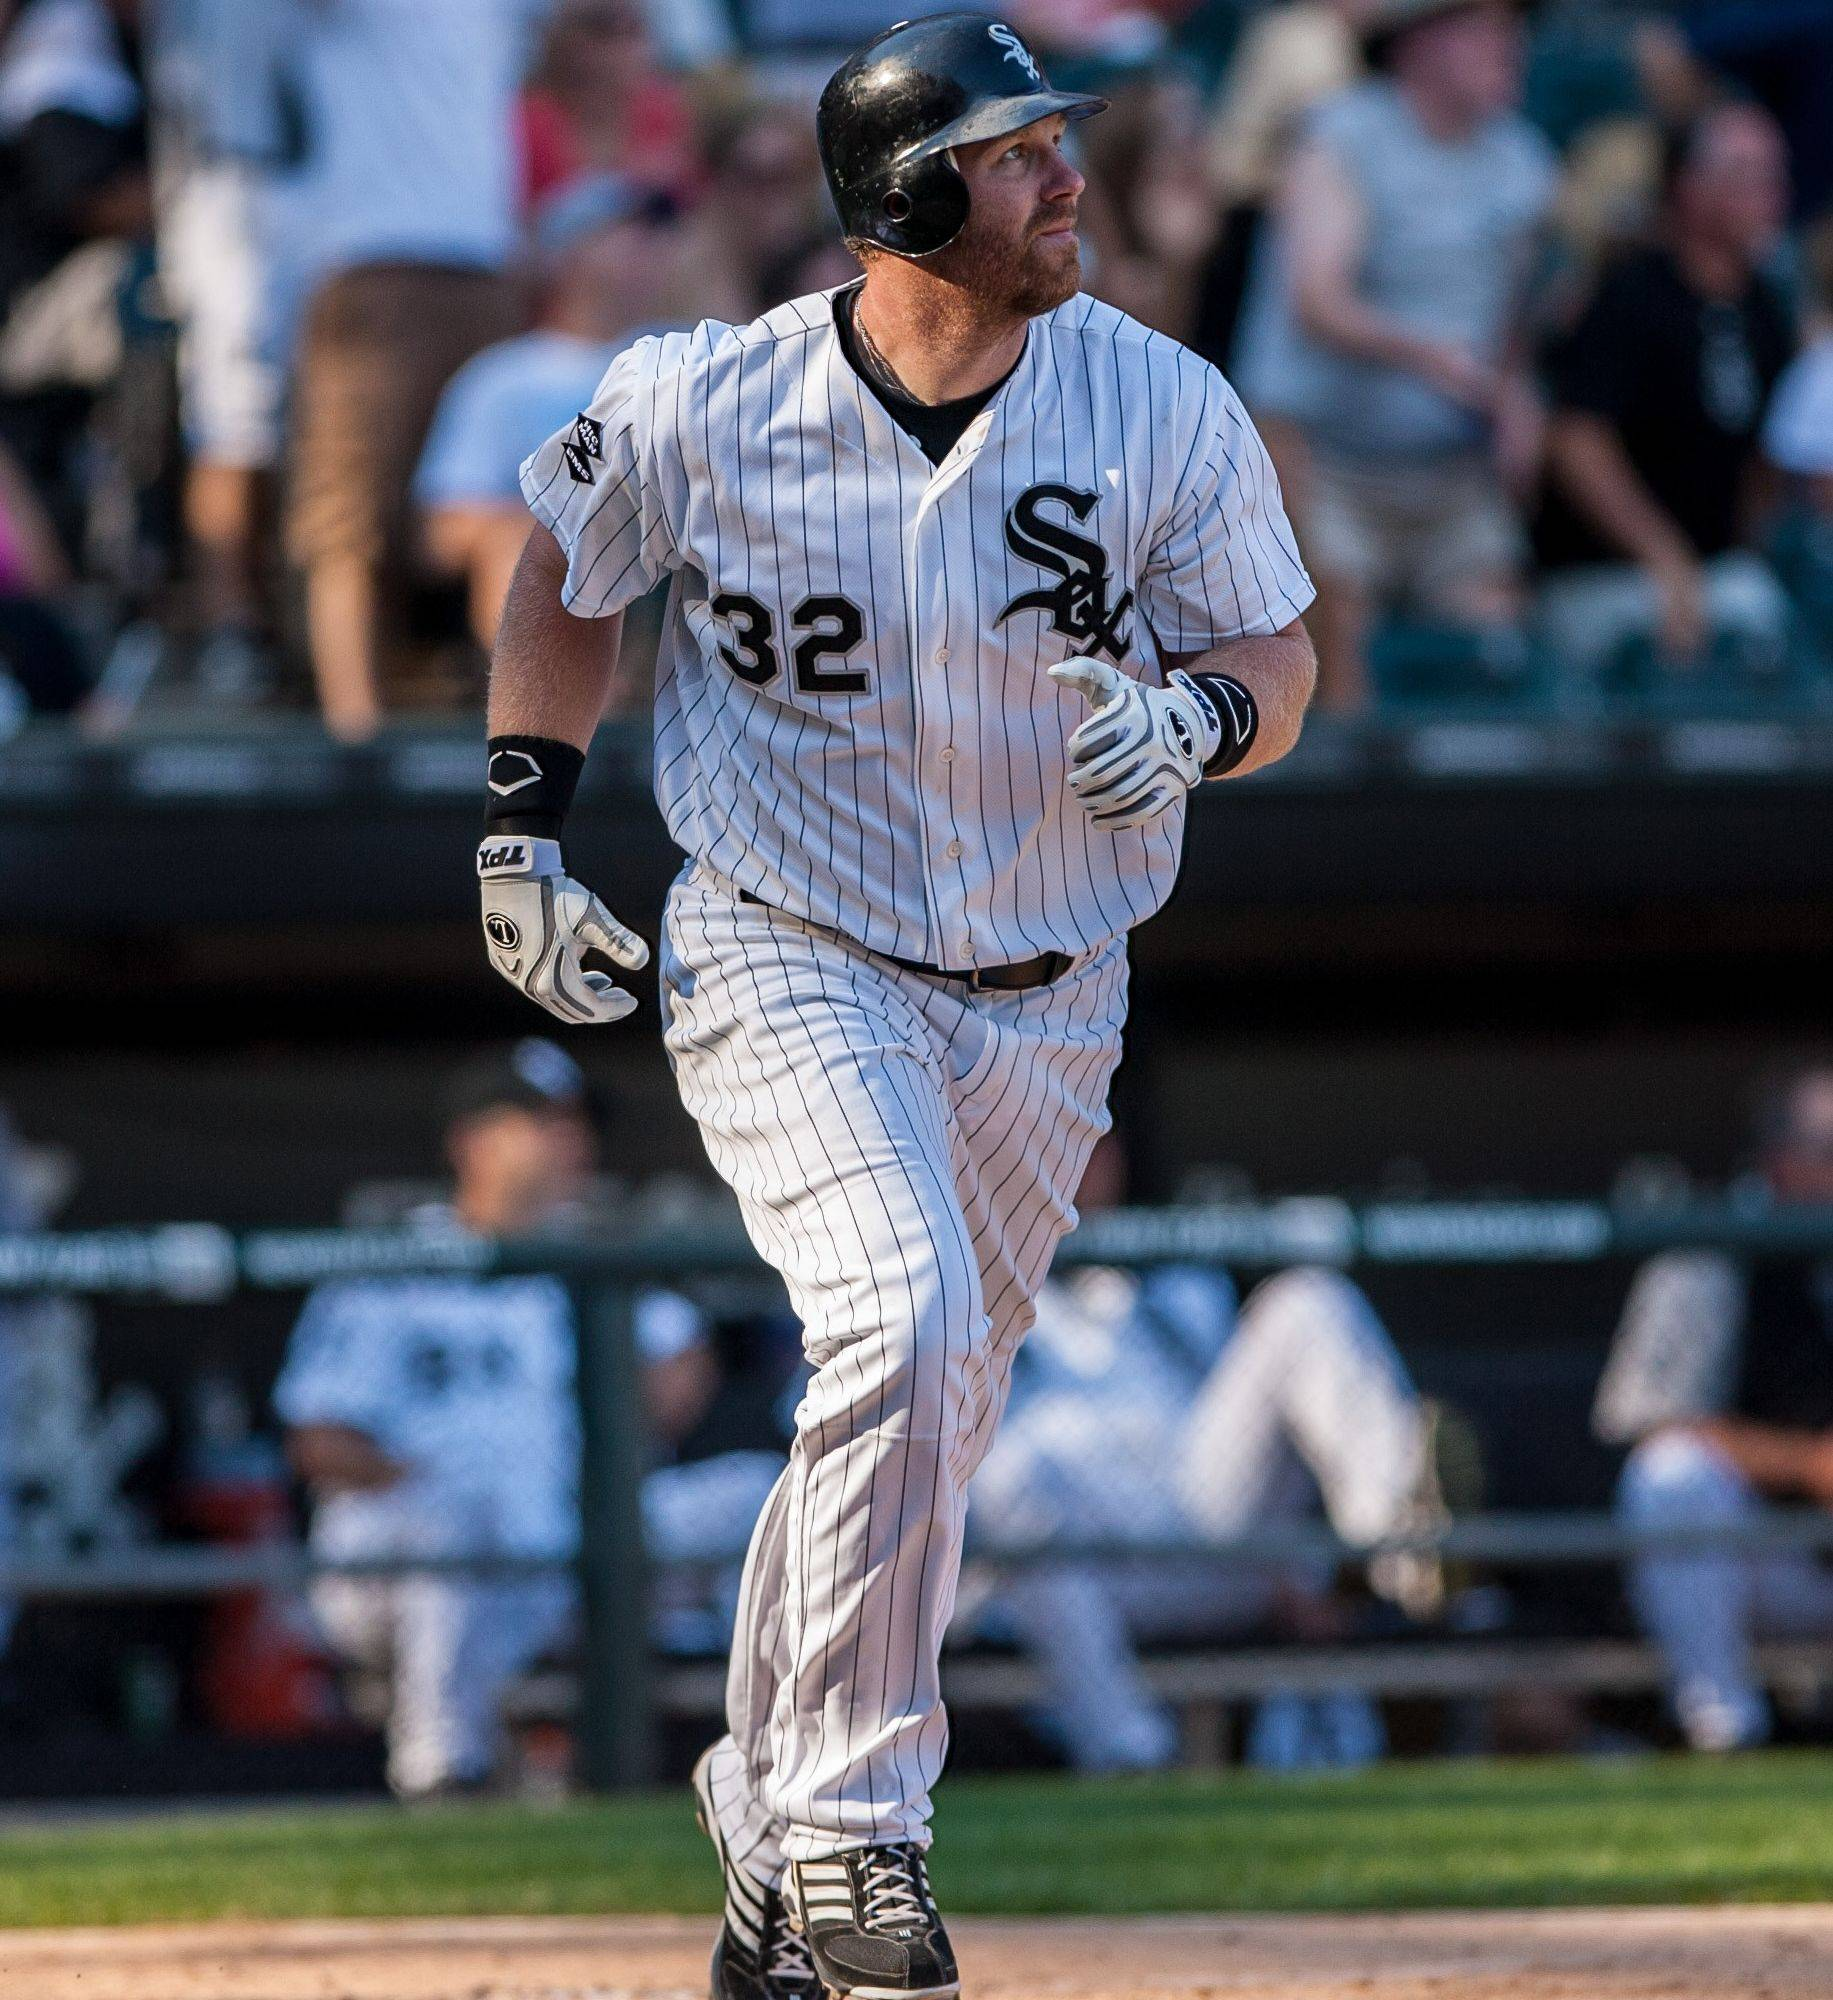 White Sox slugger Adam Dunn has 24 home runs this season to go along with his 125 strikeouts, which is exactly what the Sox expected from him when they signed him two years ago, says baseball columnist Matt Spiegel.